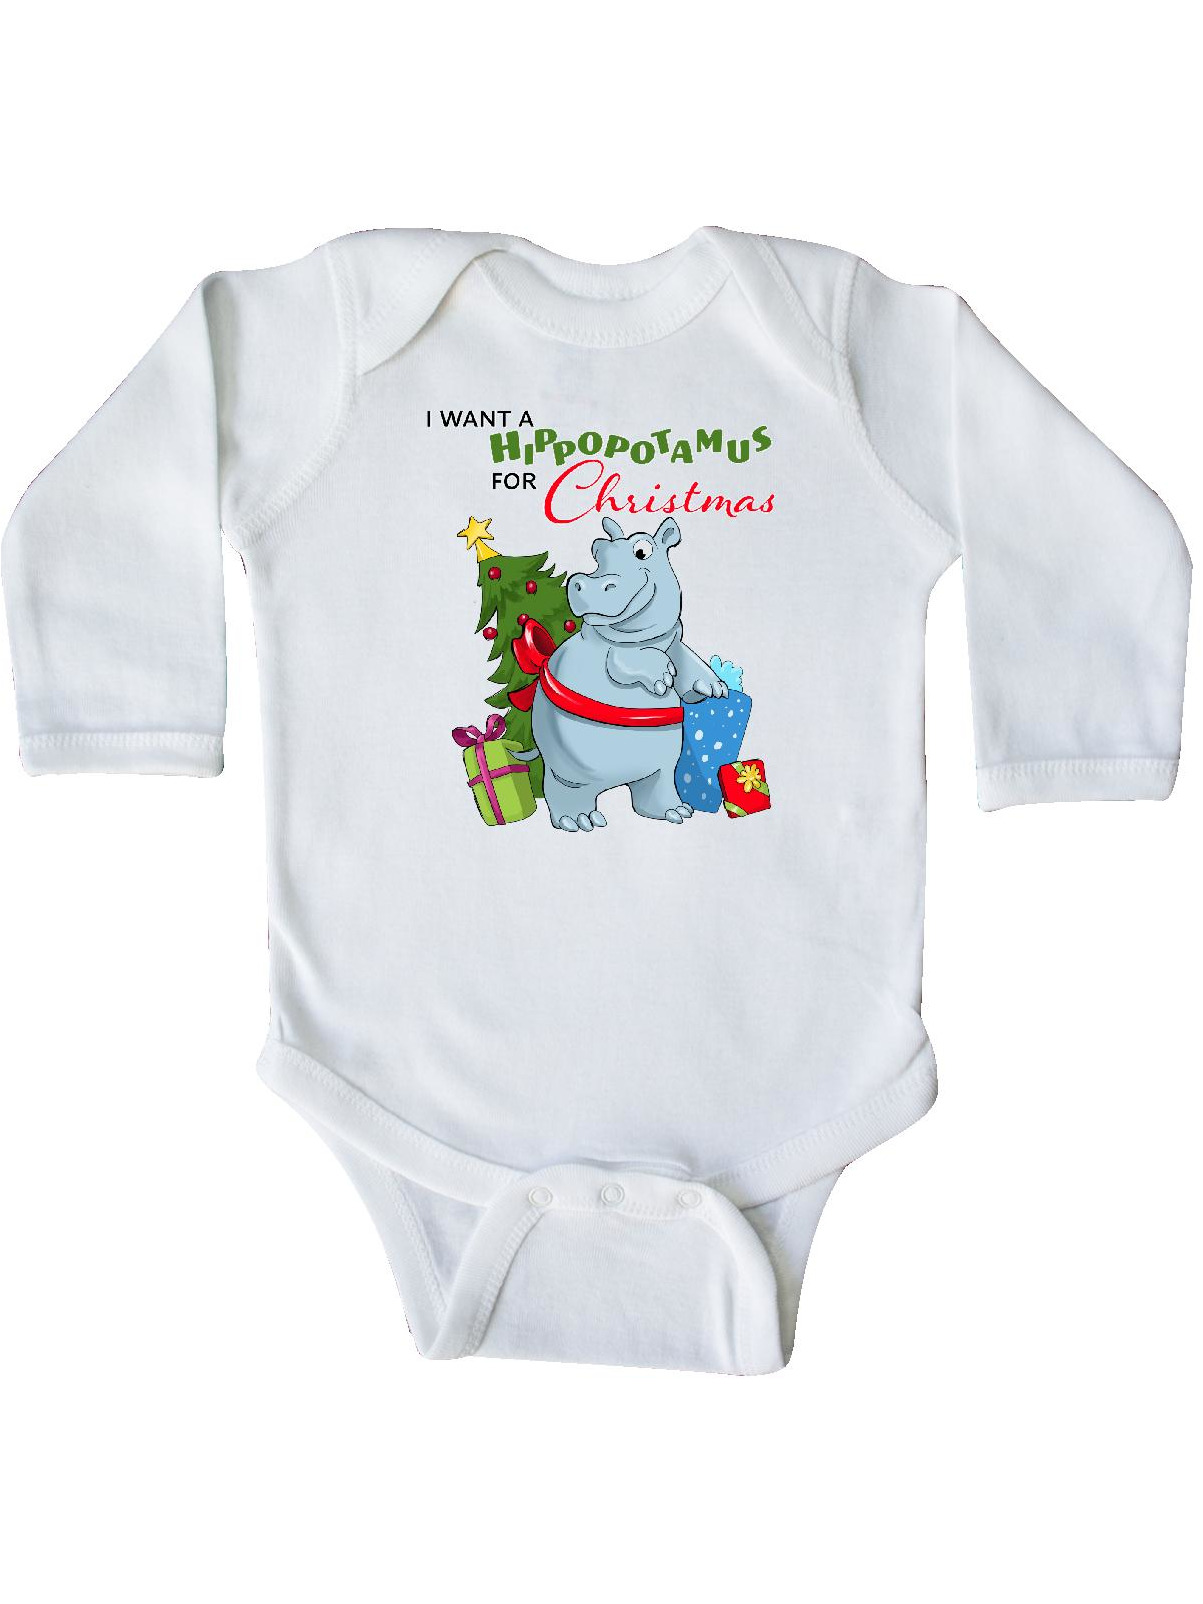 I Want a Hippopotamus for Christmas Long Sleeve Creeper - Walmart.com